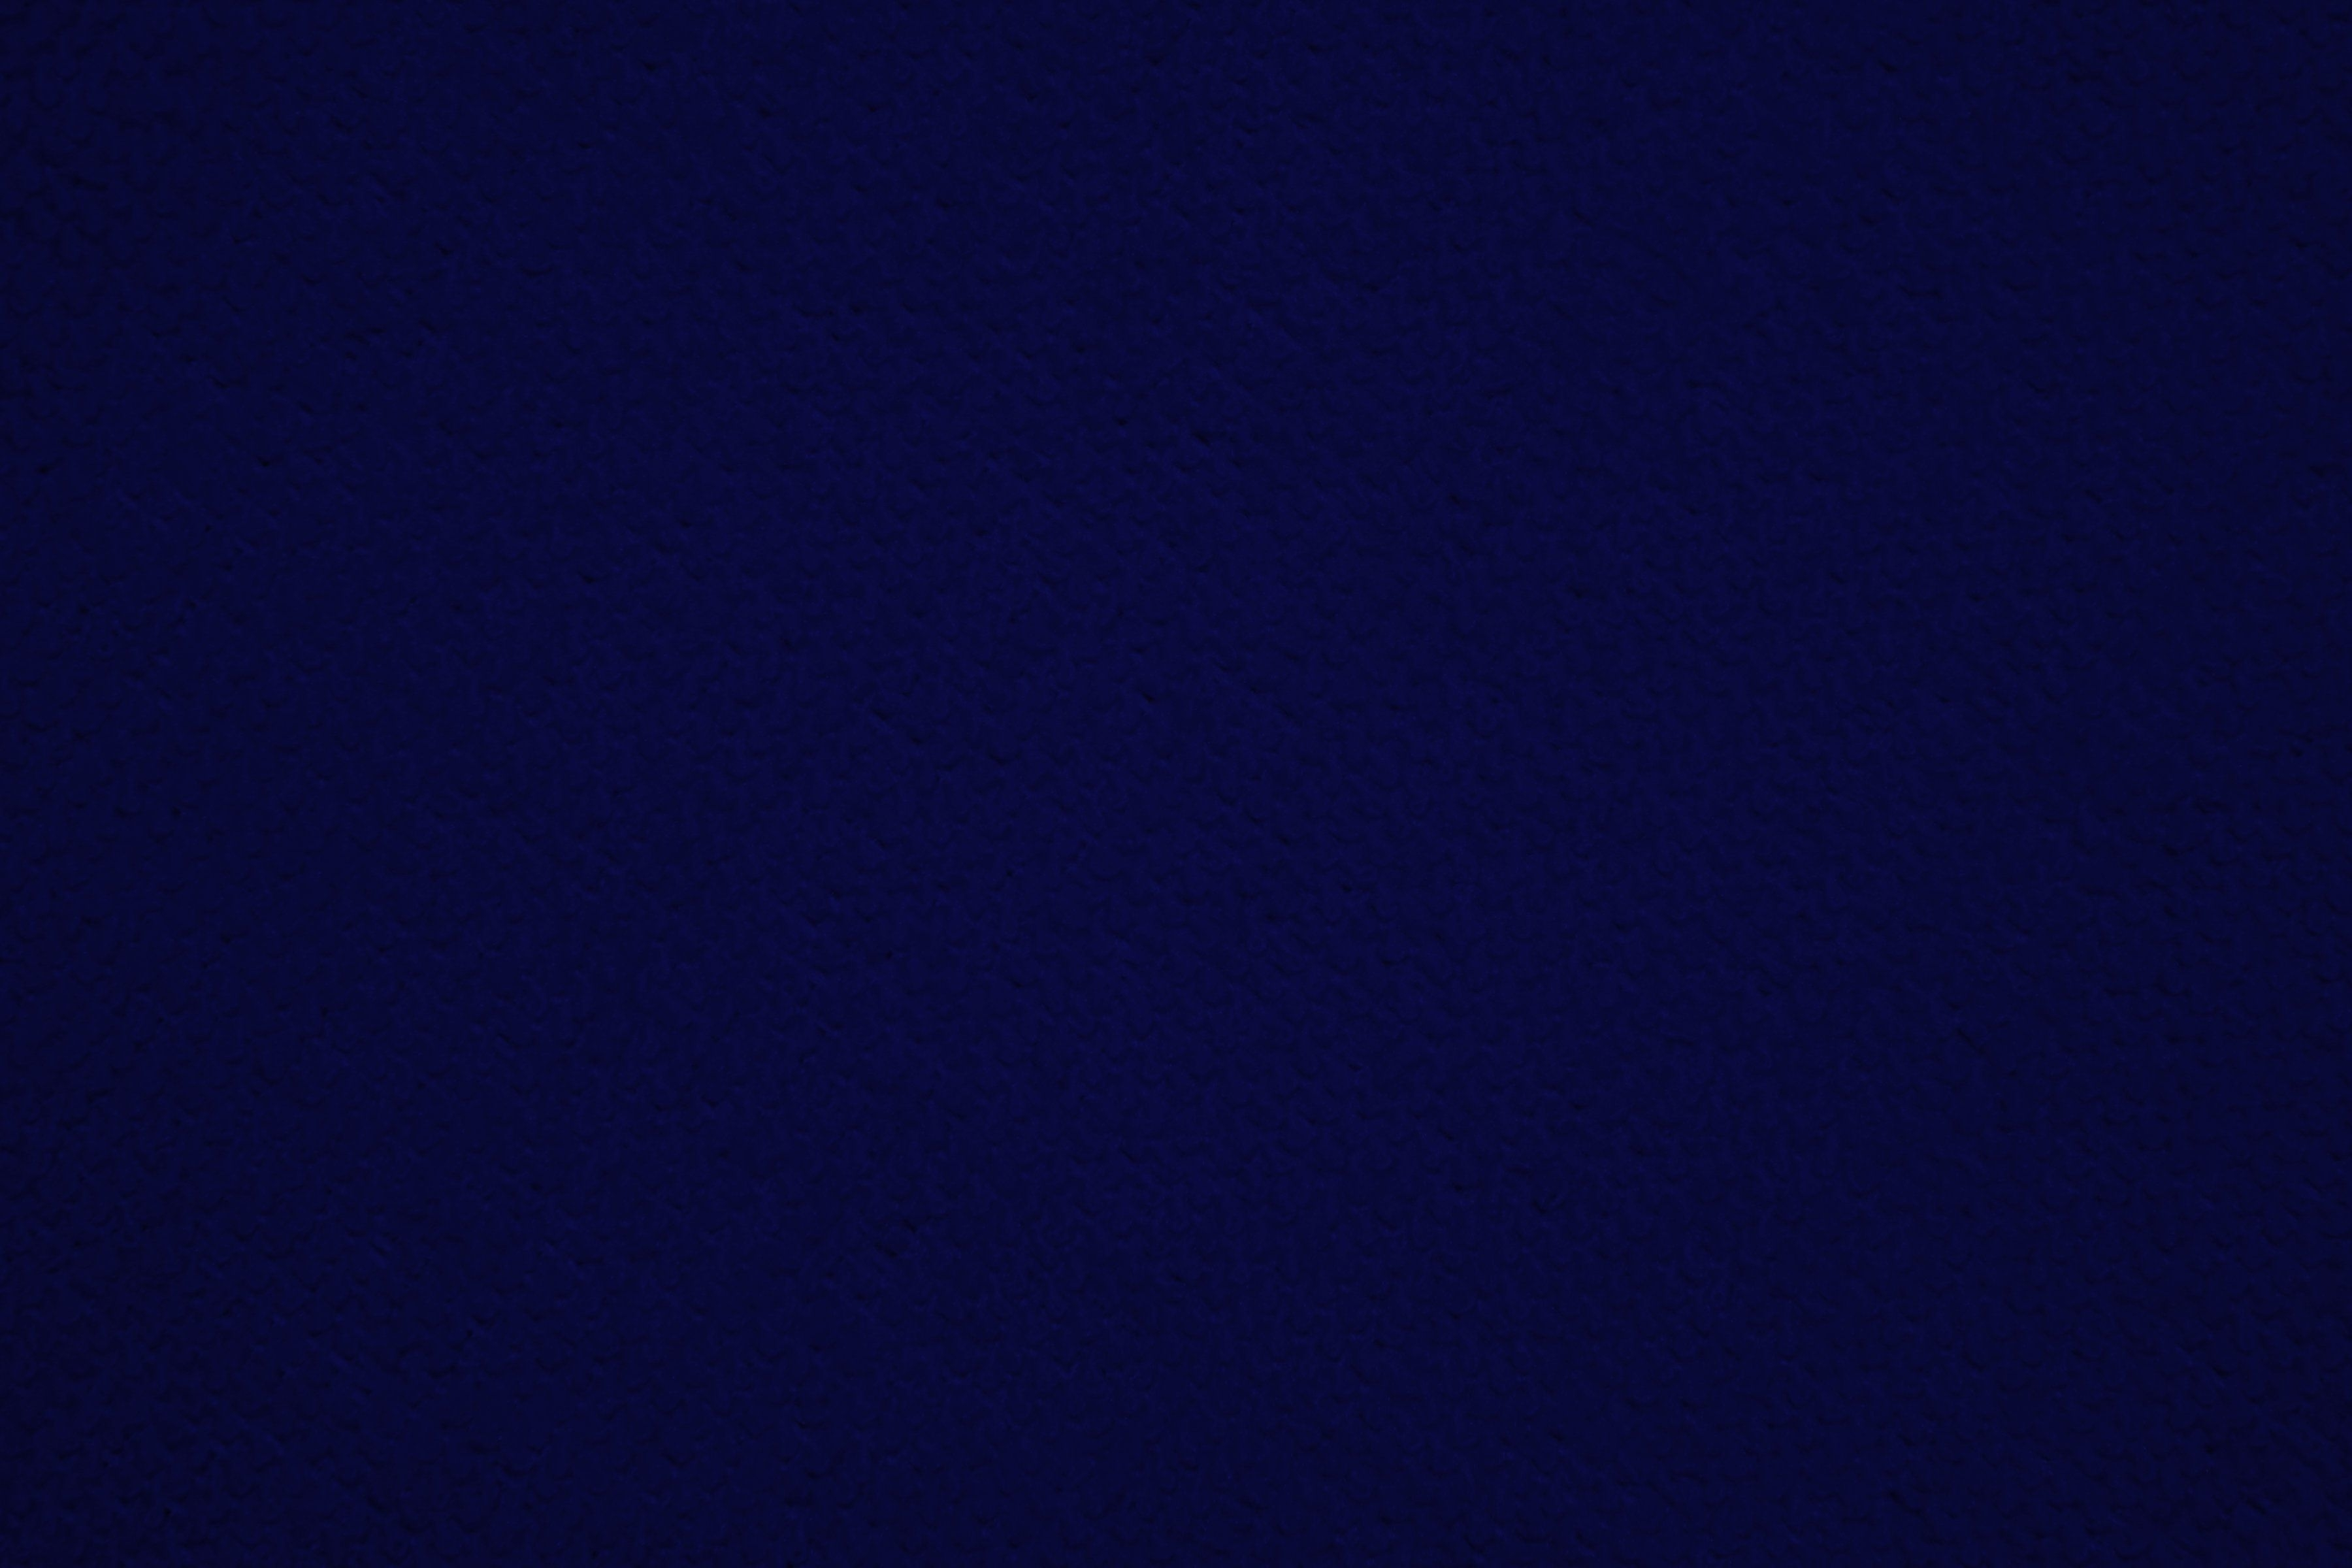 10 Latest Dark Blue Background Hd Full Hd 19201080 For Pc Background